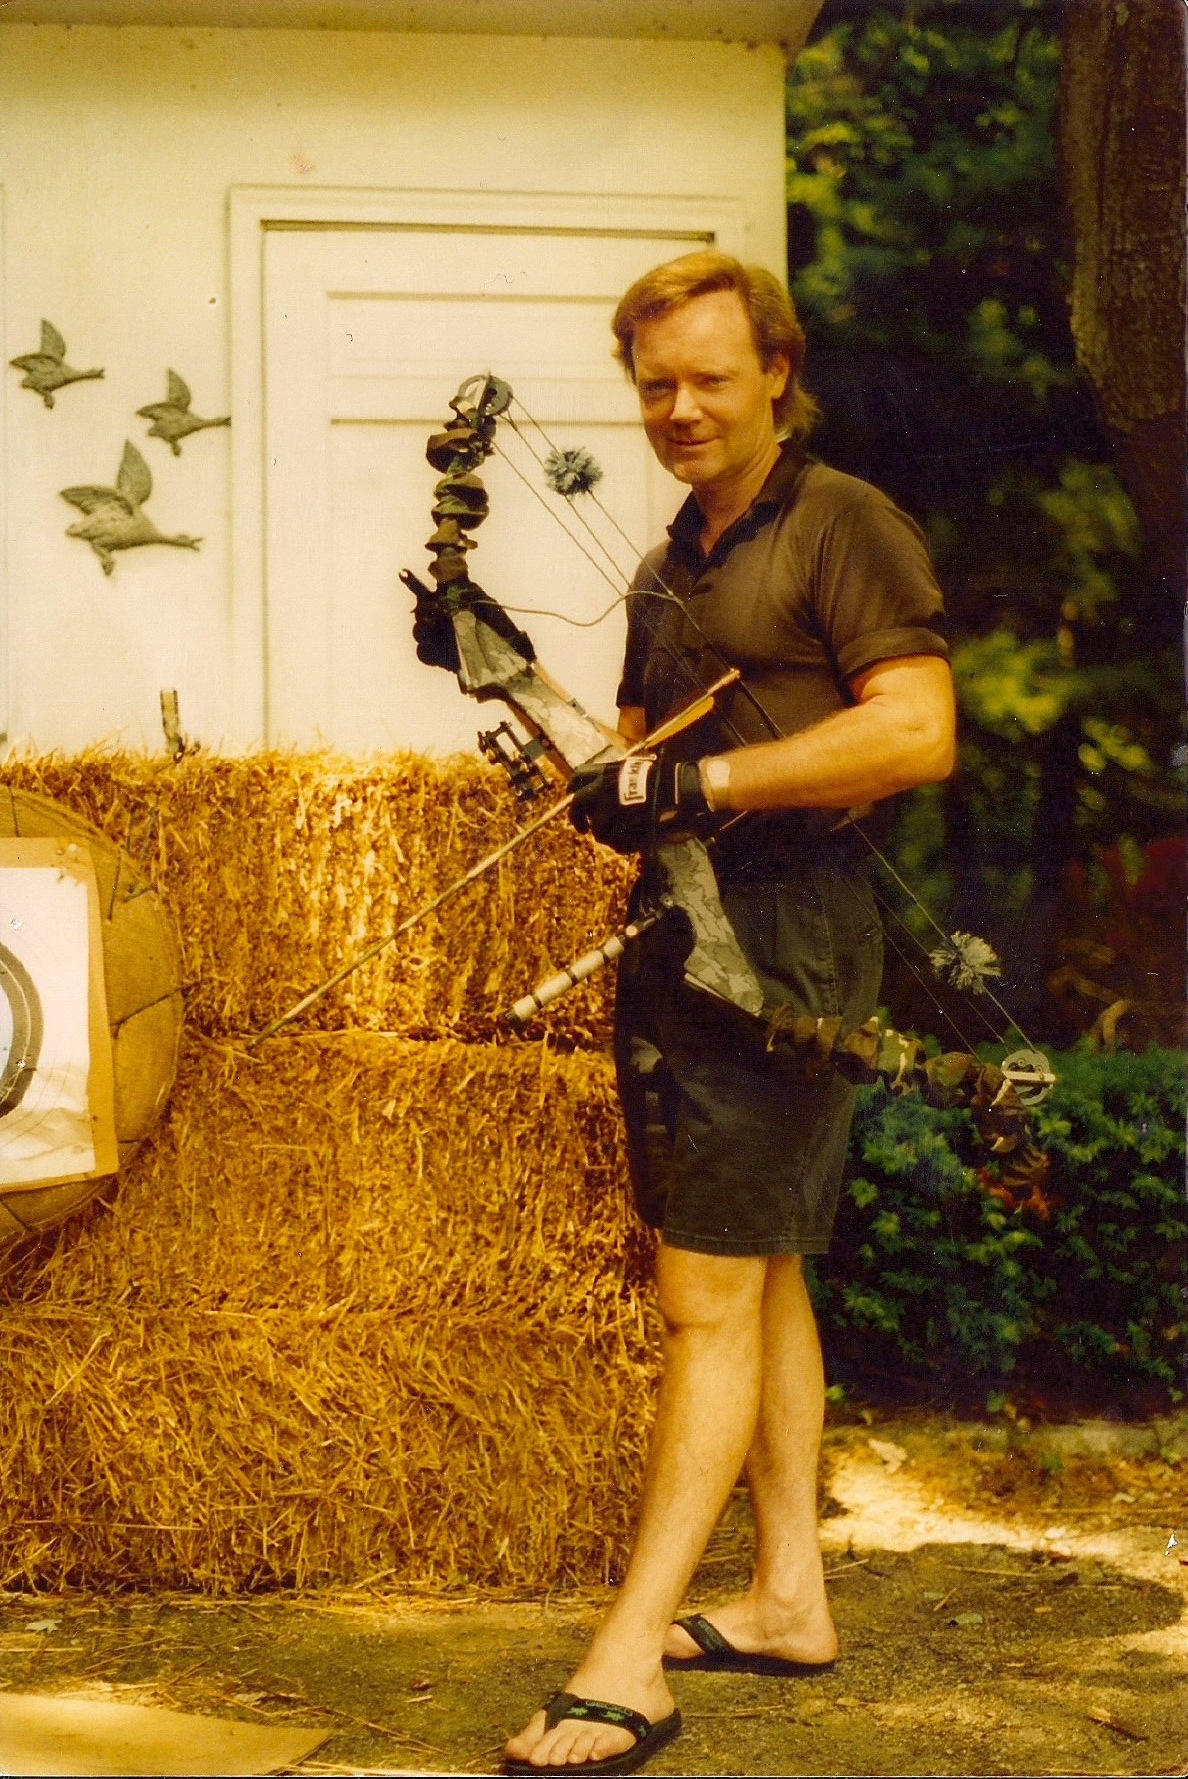 Charles used counter-surveillance techniques to evade authorities. At times, he wore night-vision goggles to watch out for uninvited visitors at his estate.  Courtesy of Charles Kennedy.